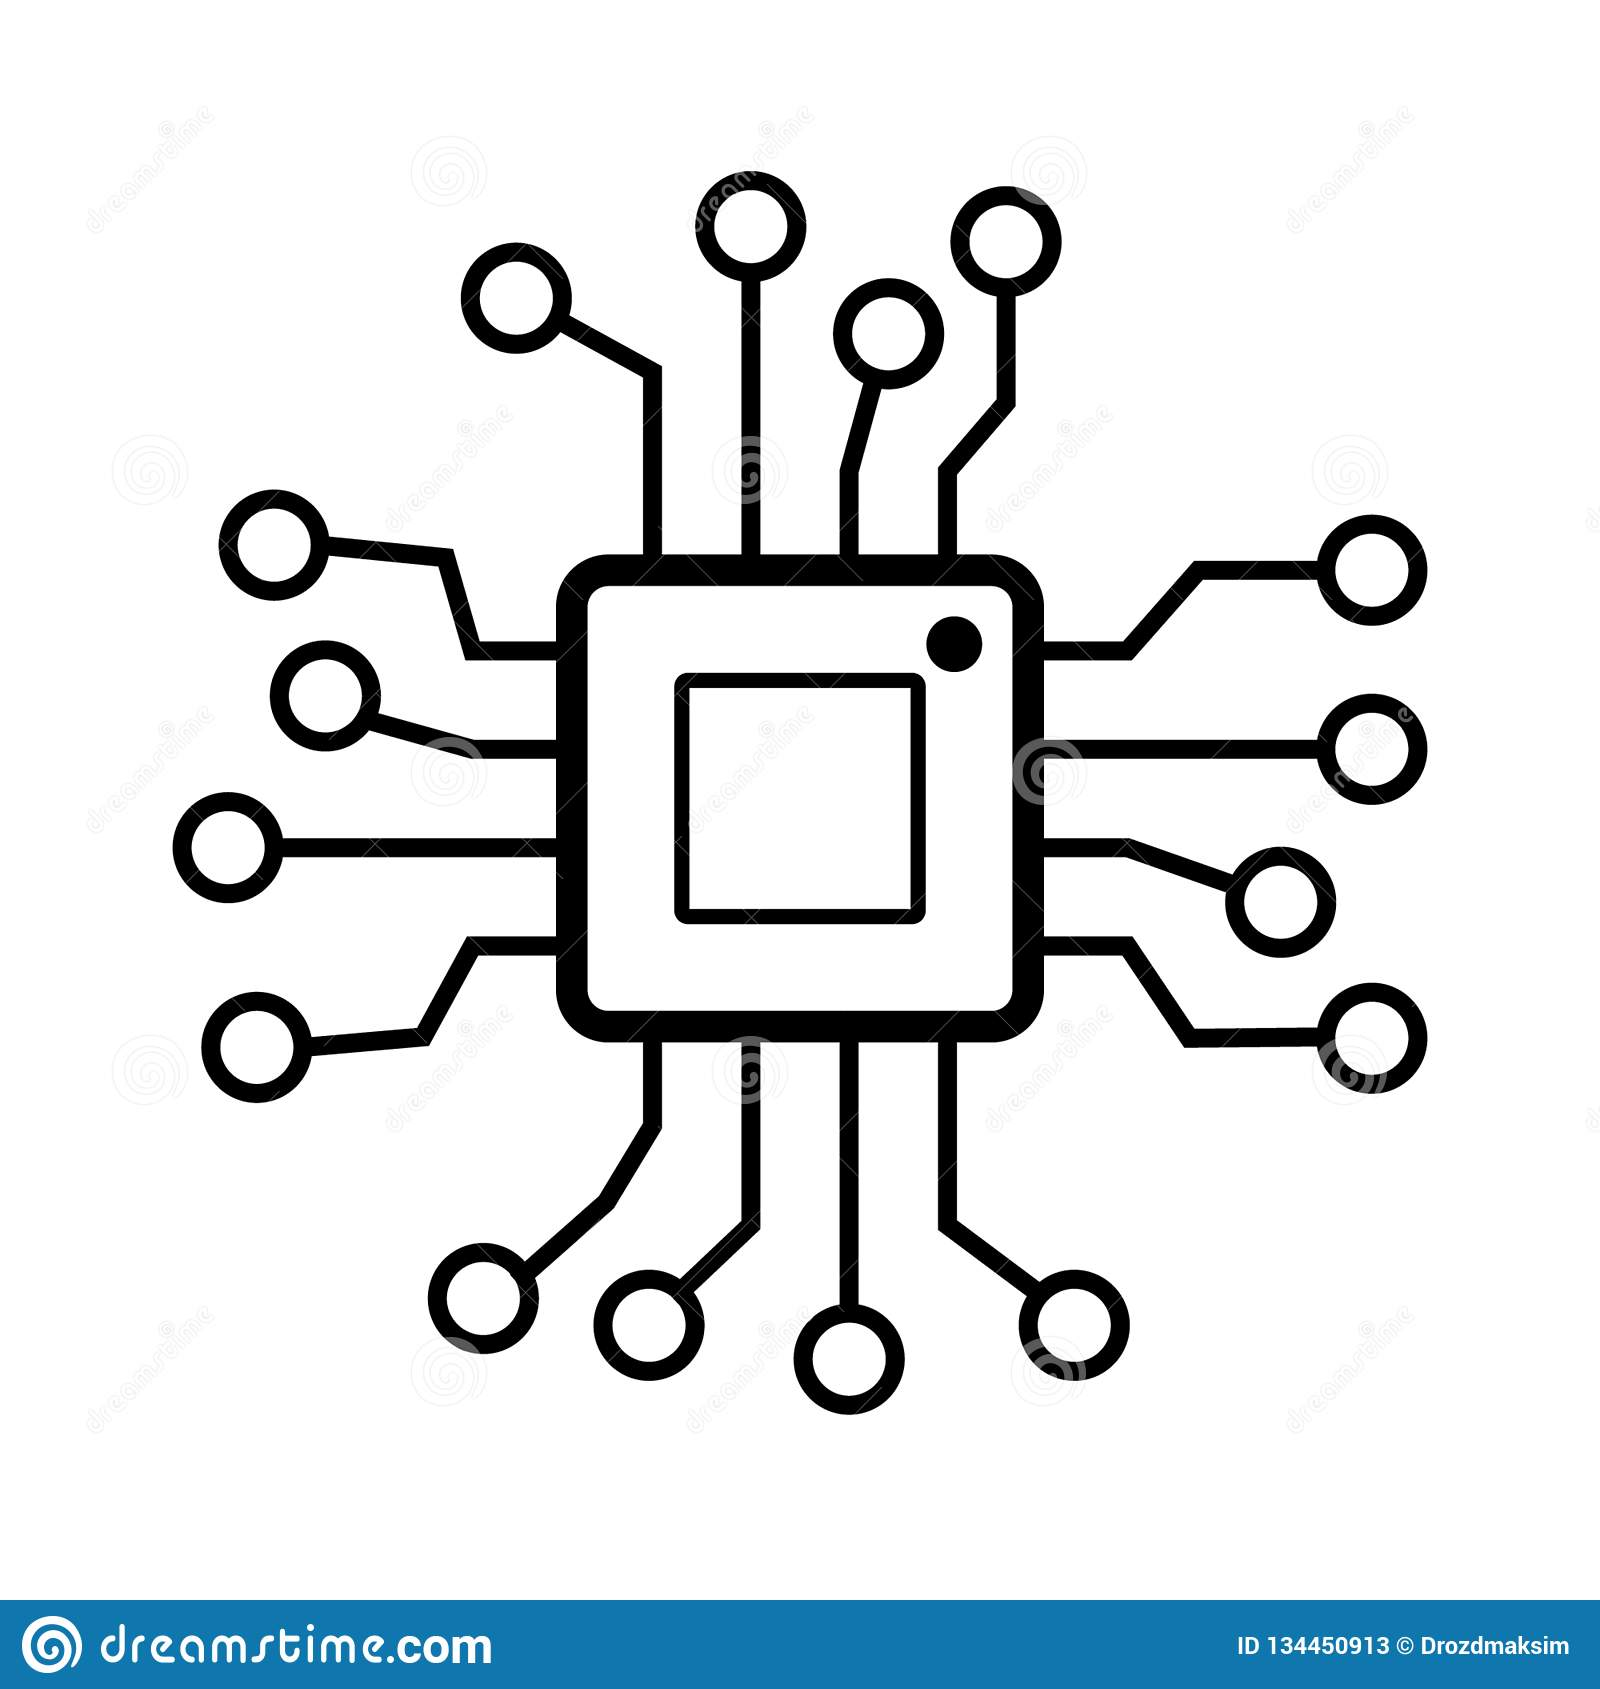 cpu vector icon stock vector illustration of chip white 134450913 https www dreamstime com cpu vector icon cpu vector icon vector illustration isolated white background image134450913